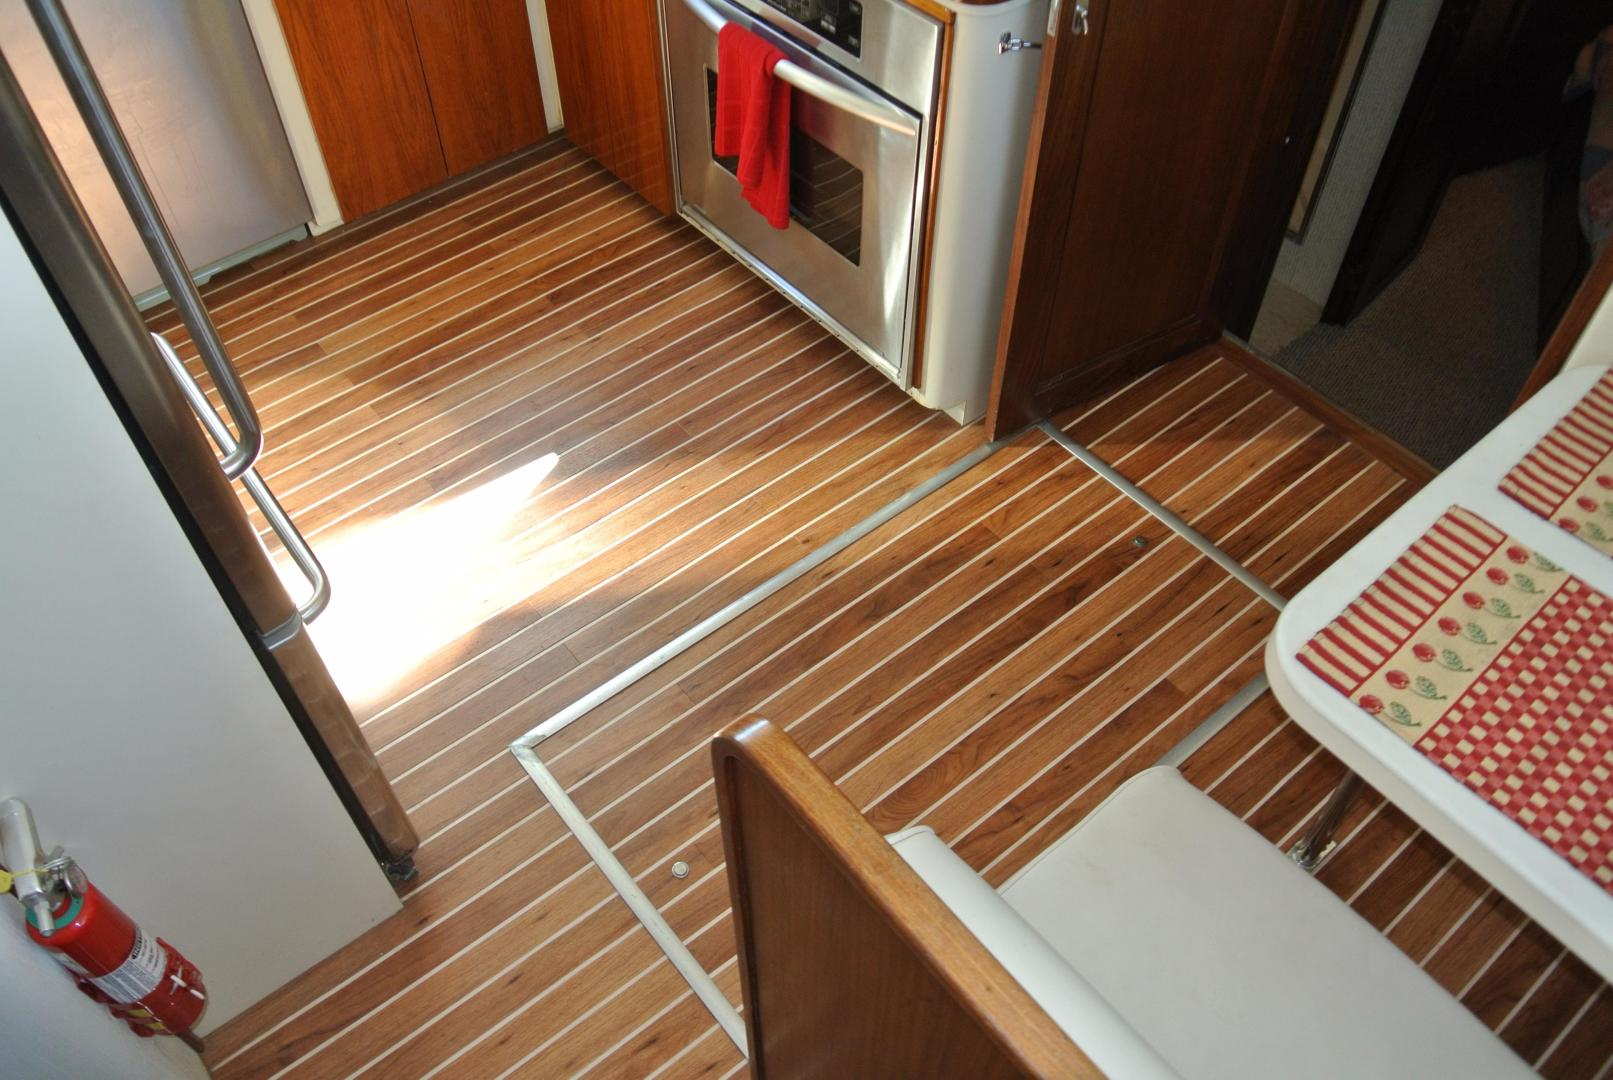 Hatteras-67 Cockpit Motor Yacht 1988-Lady Encore Saint Petersburg-Florida-United States-Galley-926193 | Thumbnail